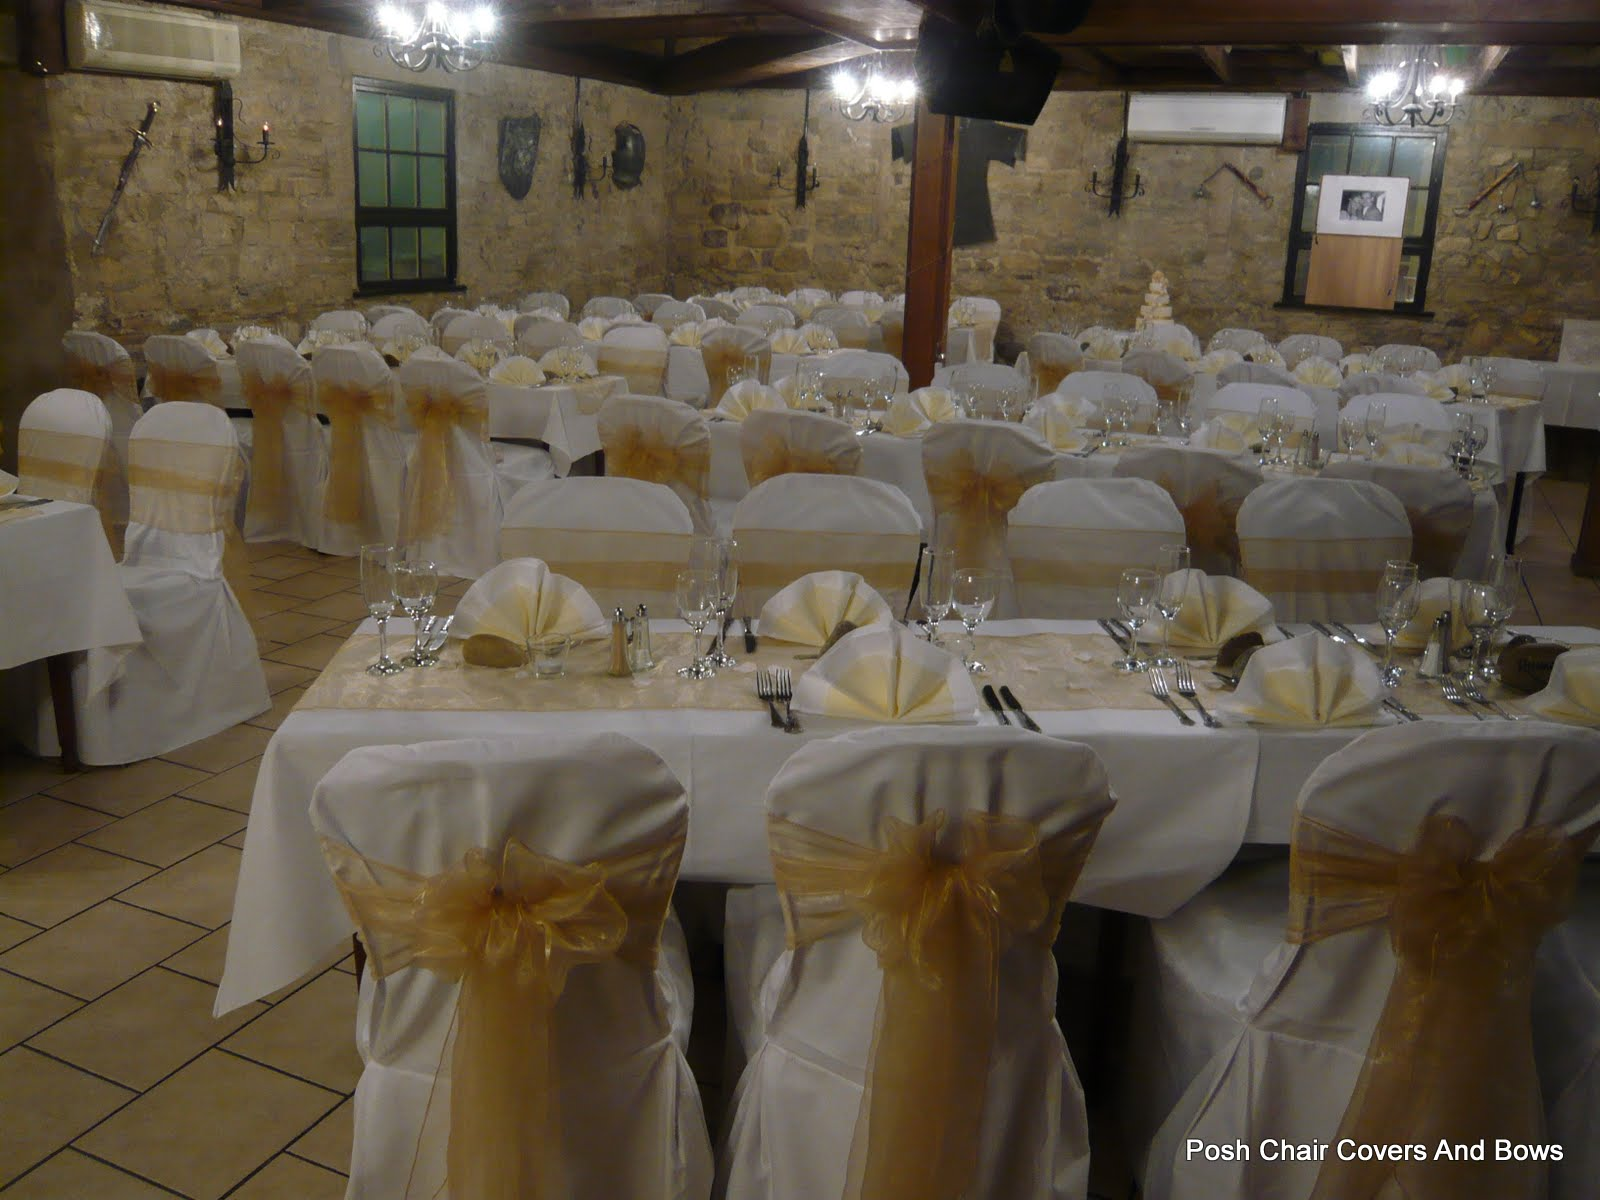 chair covers range banquet rental posh & bows | chiavari chairs |flower wall|hire|centrepieces|thrones|chair